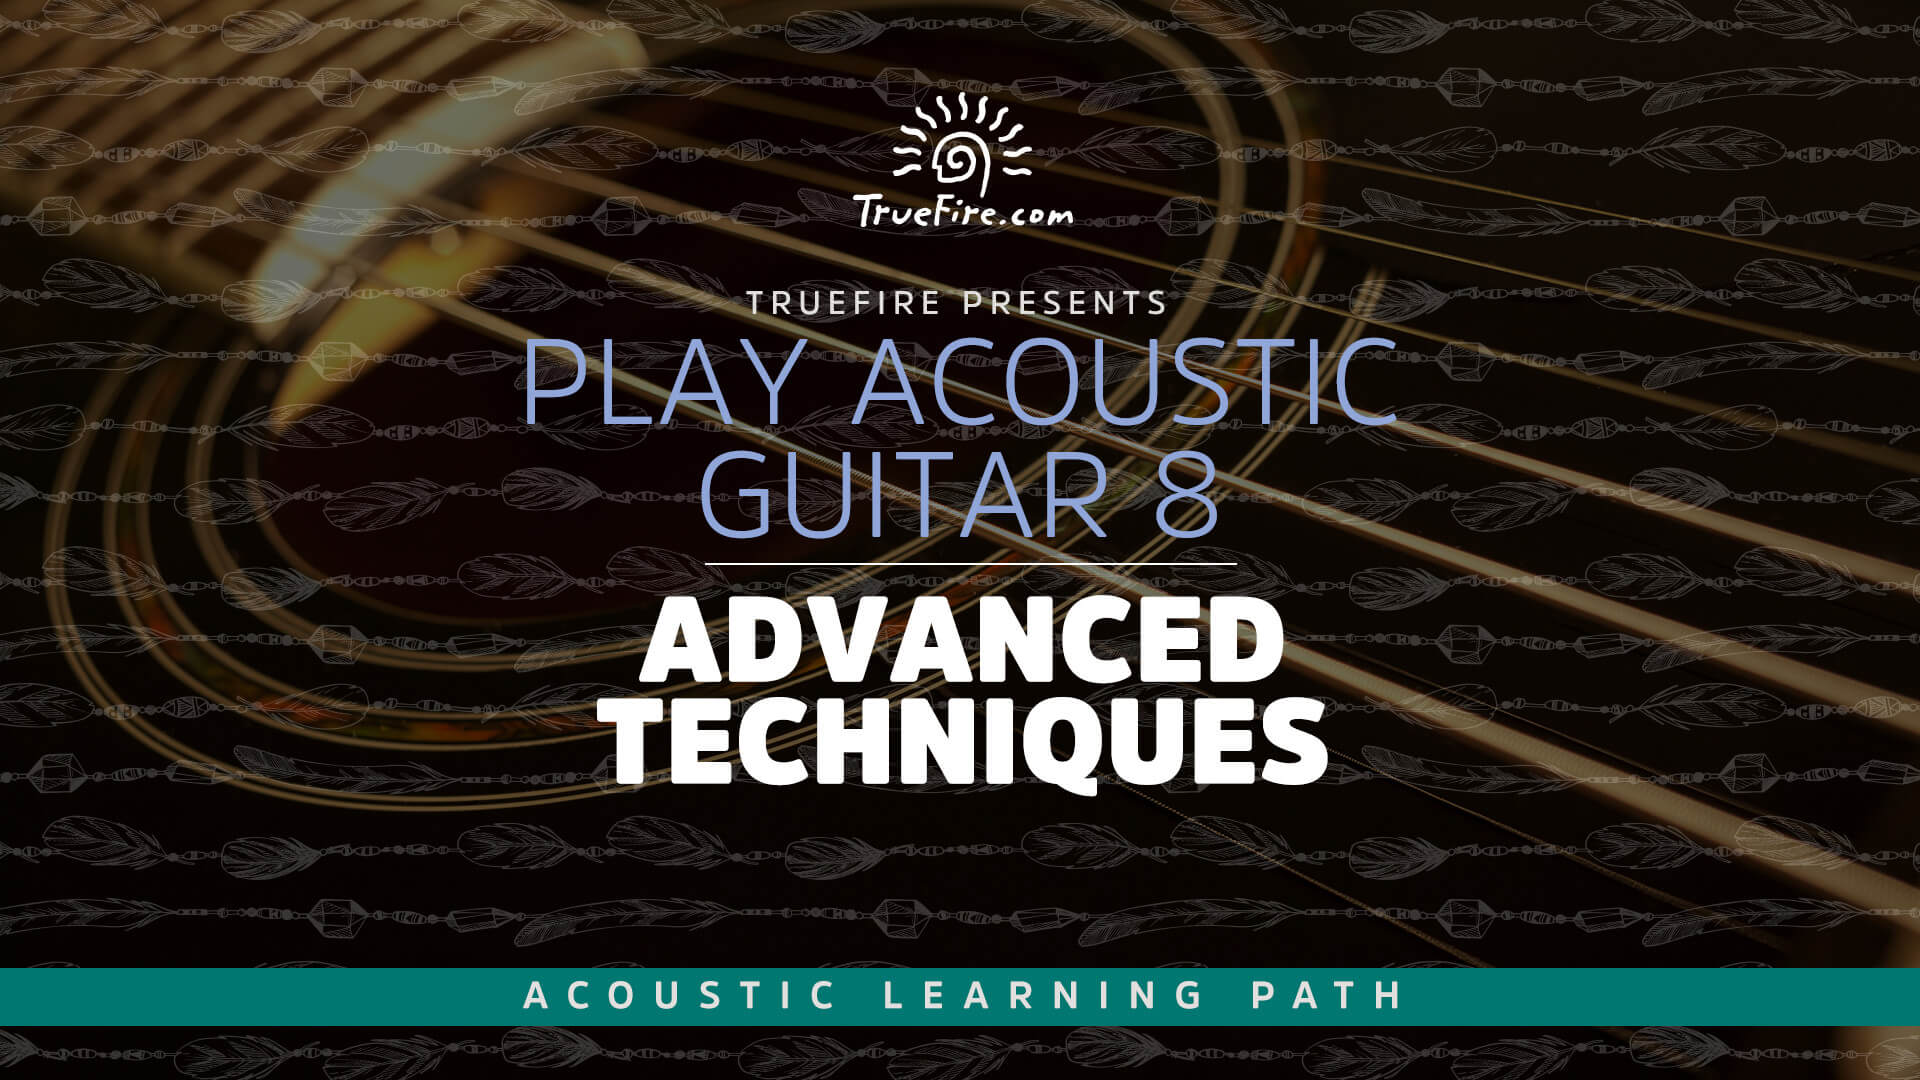 Play Acoustic Guitar 8 Advanced Techniques Truefire